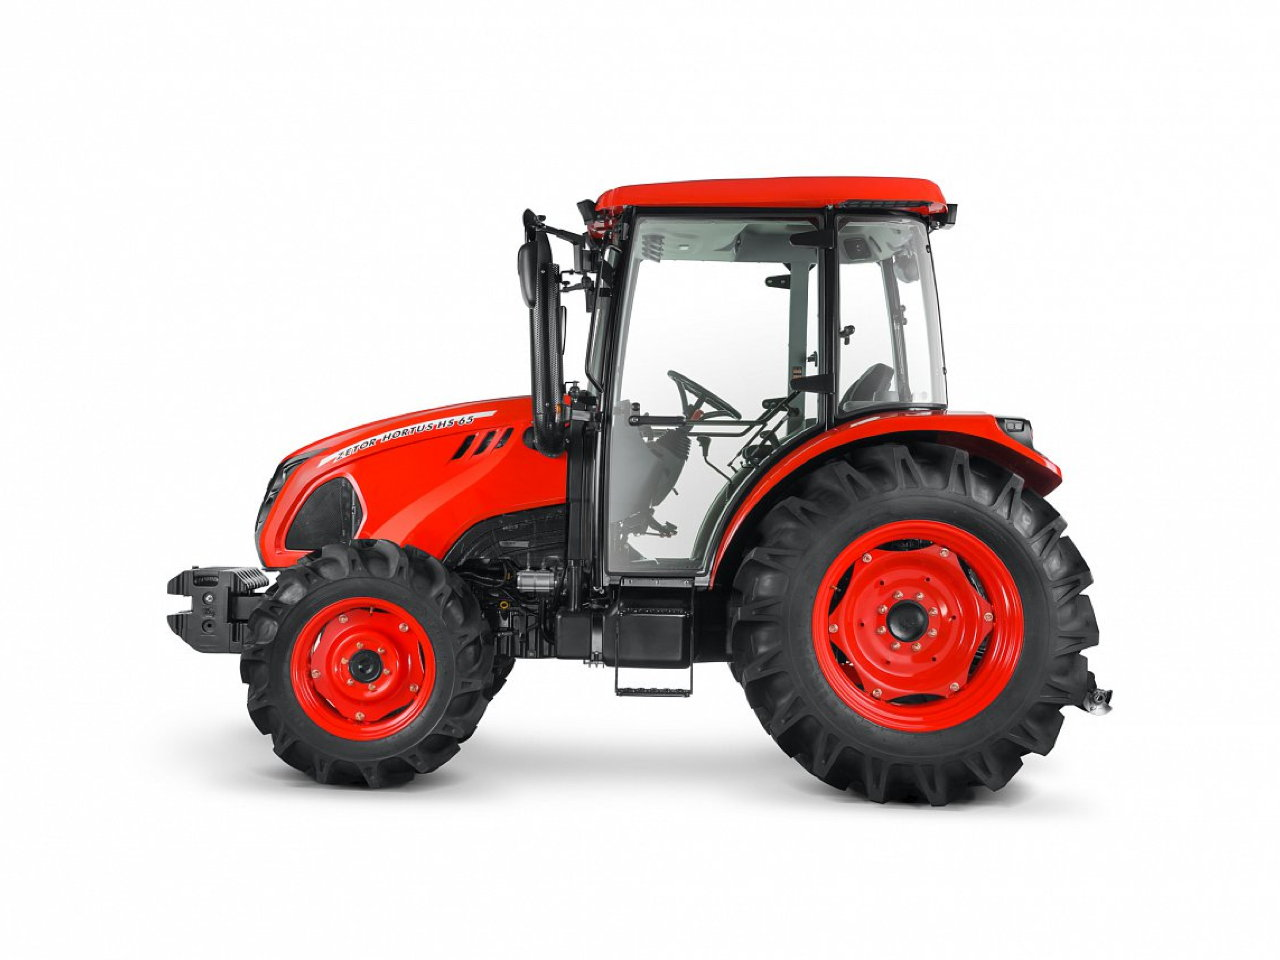 Zetor Hortus CL 65 Tractor Price Specs Review